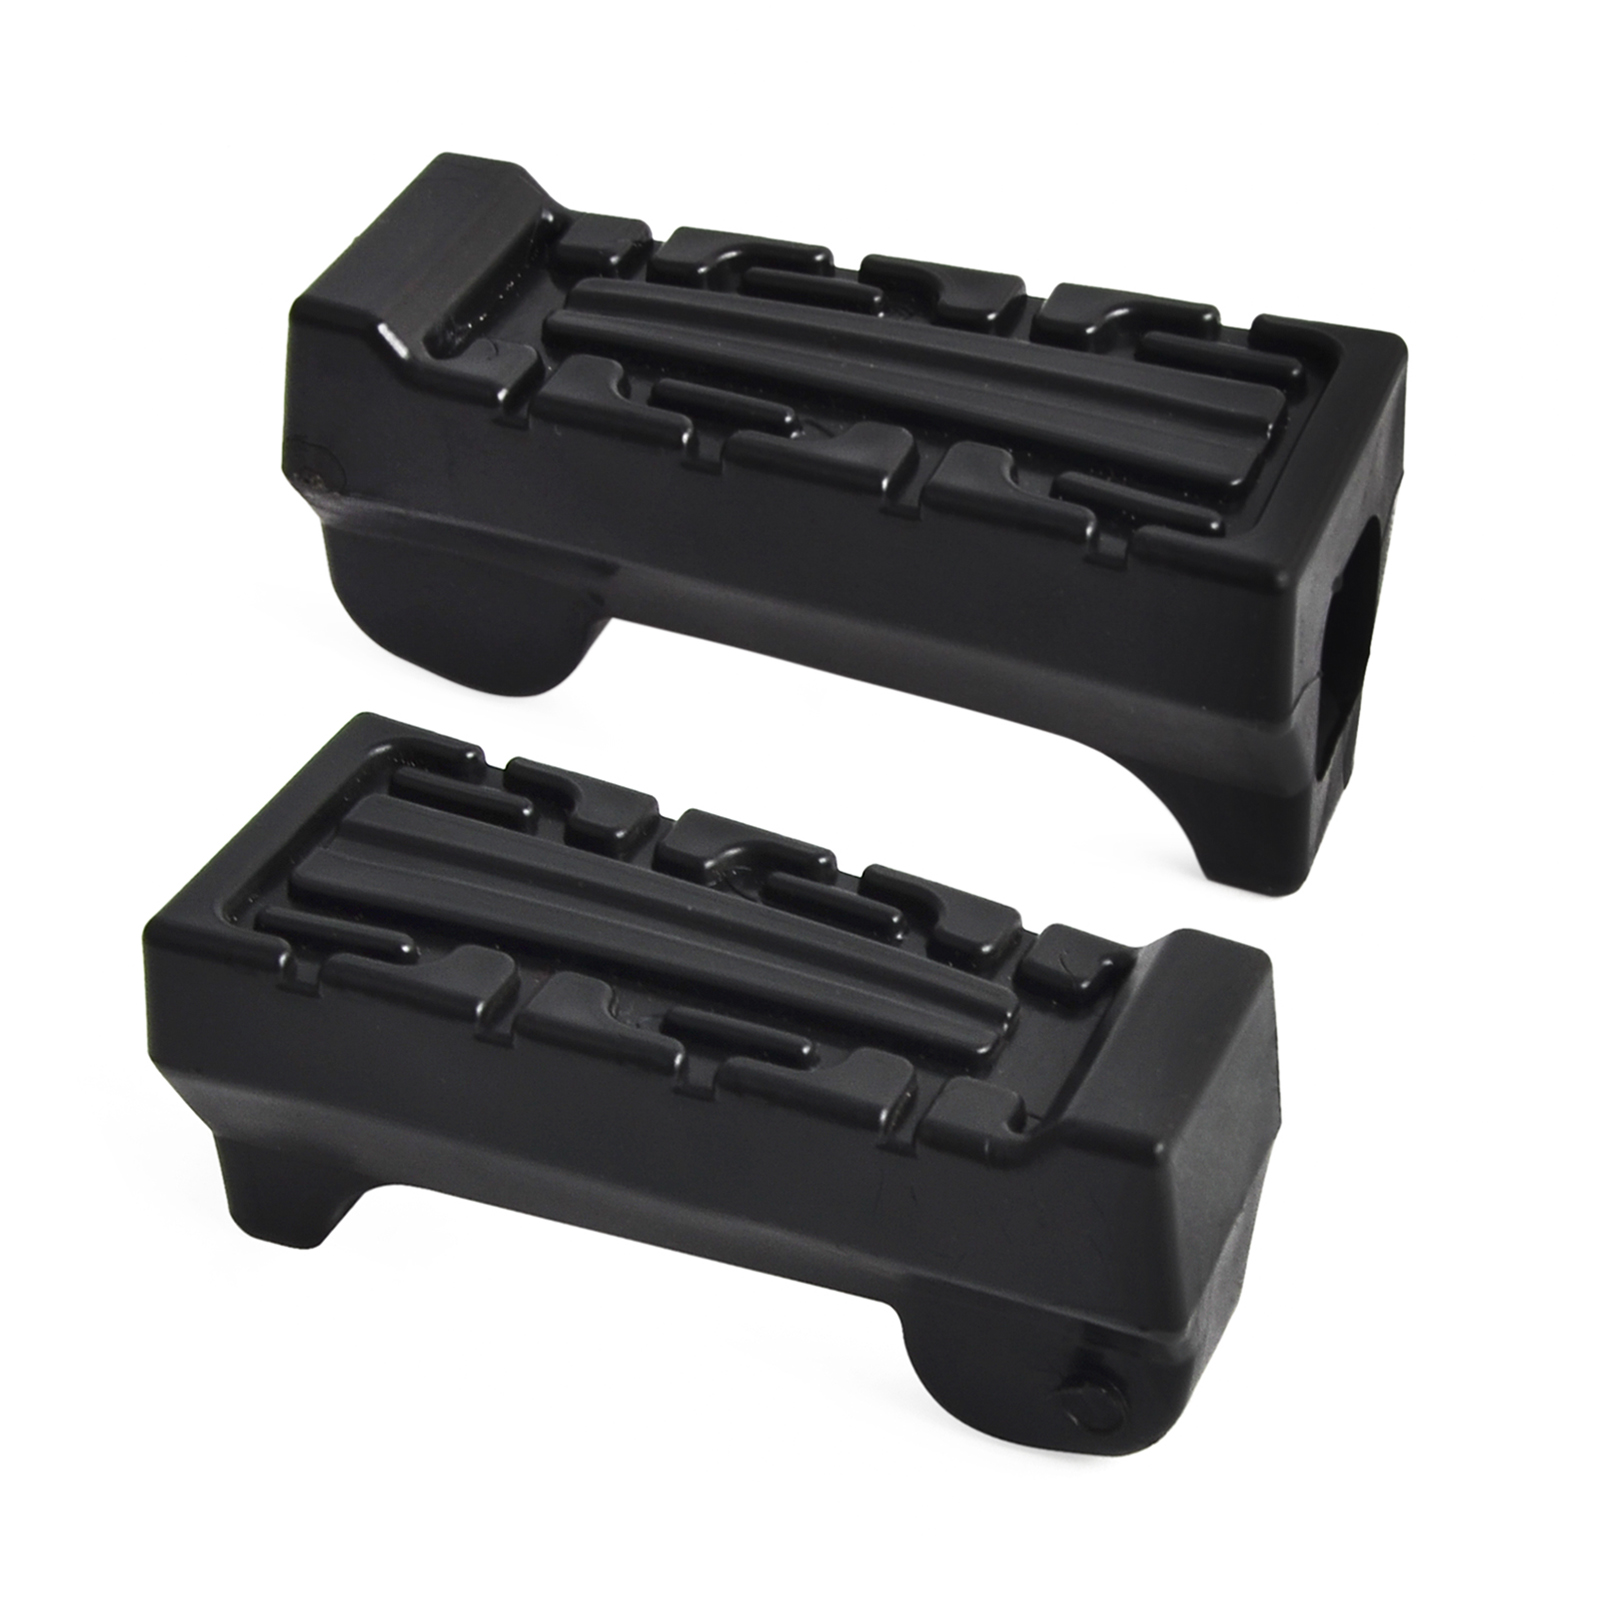 Left & Right Motorcycle Rubber Front Foot Rest Pegs For Yamaha YBR125 YBR 125 All Years